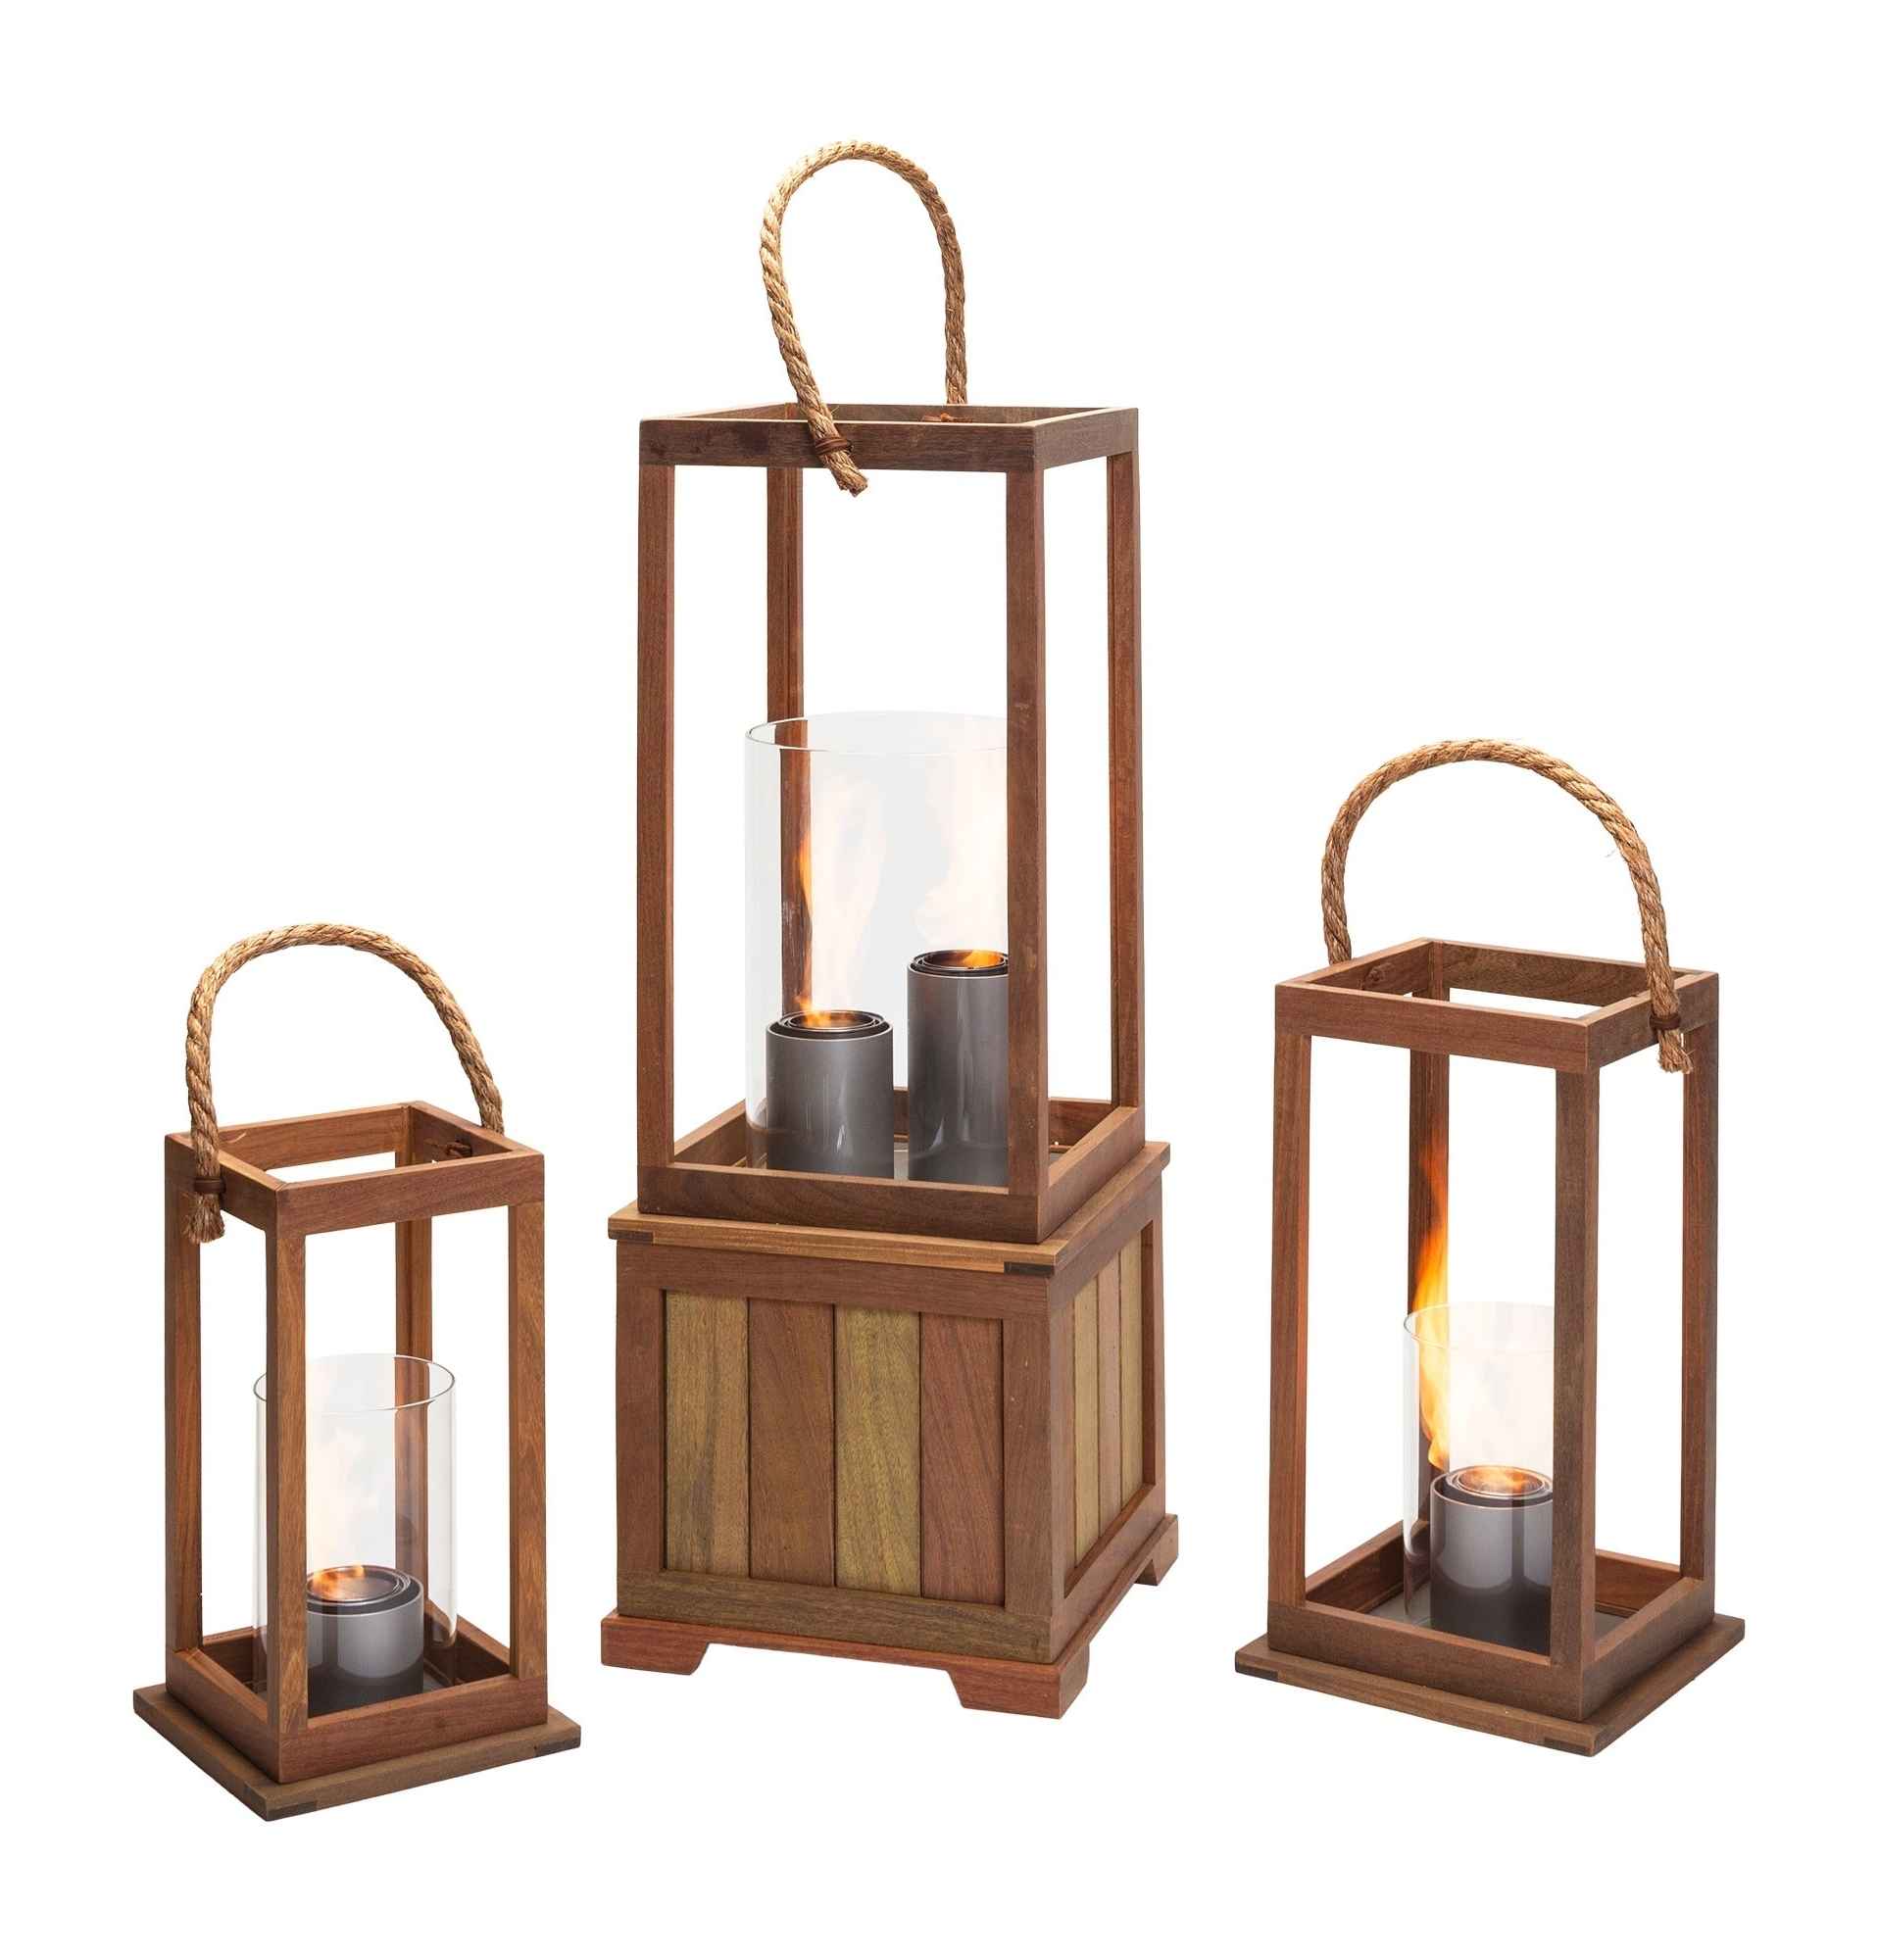 Sonoma 17 Inch Outdoor Lantern In Ipe Woodnorthcape Fire With 2019 Outdoor Gel Lanterns (View 17 of 20)